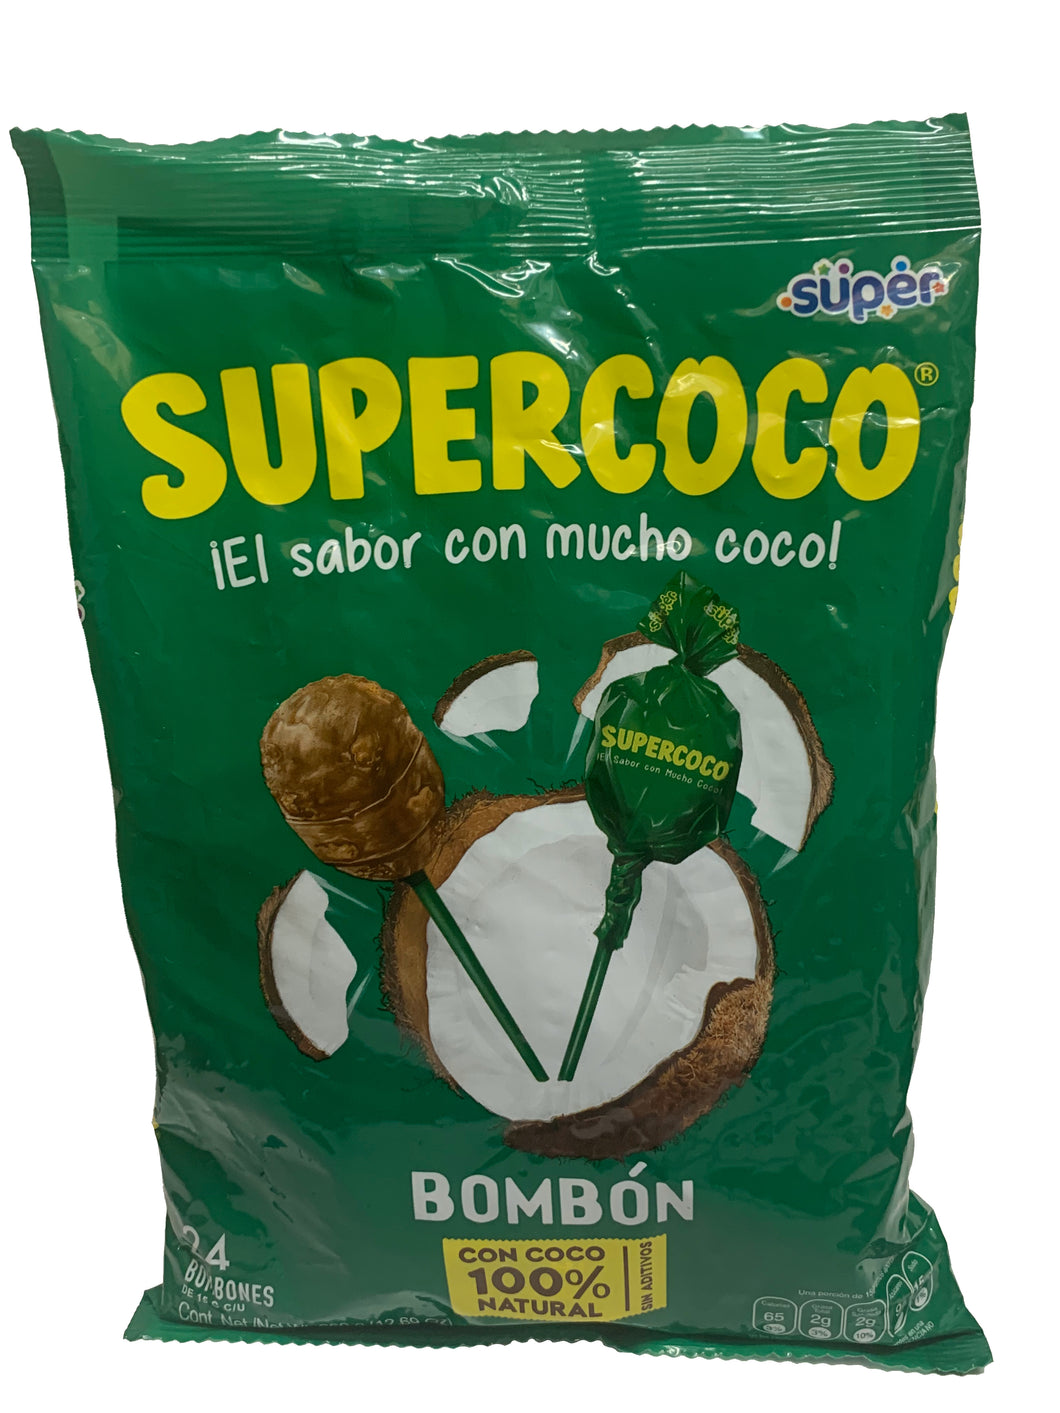 Bombon Supercoco Lollies 24 Pack